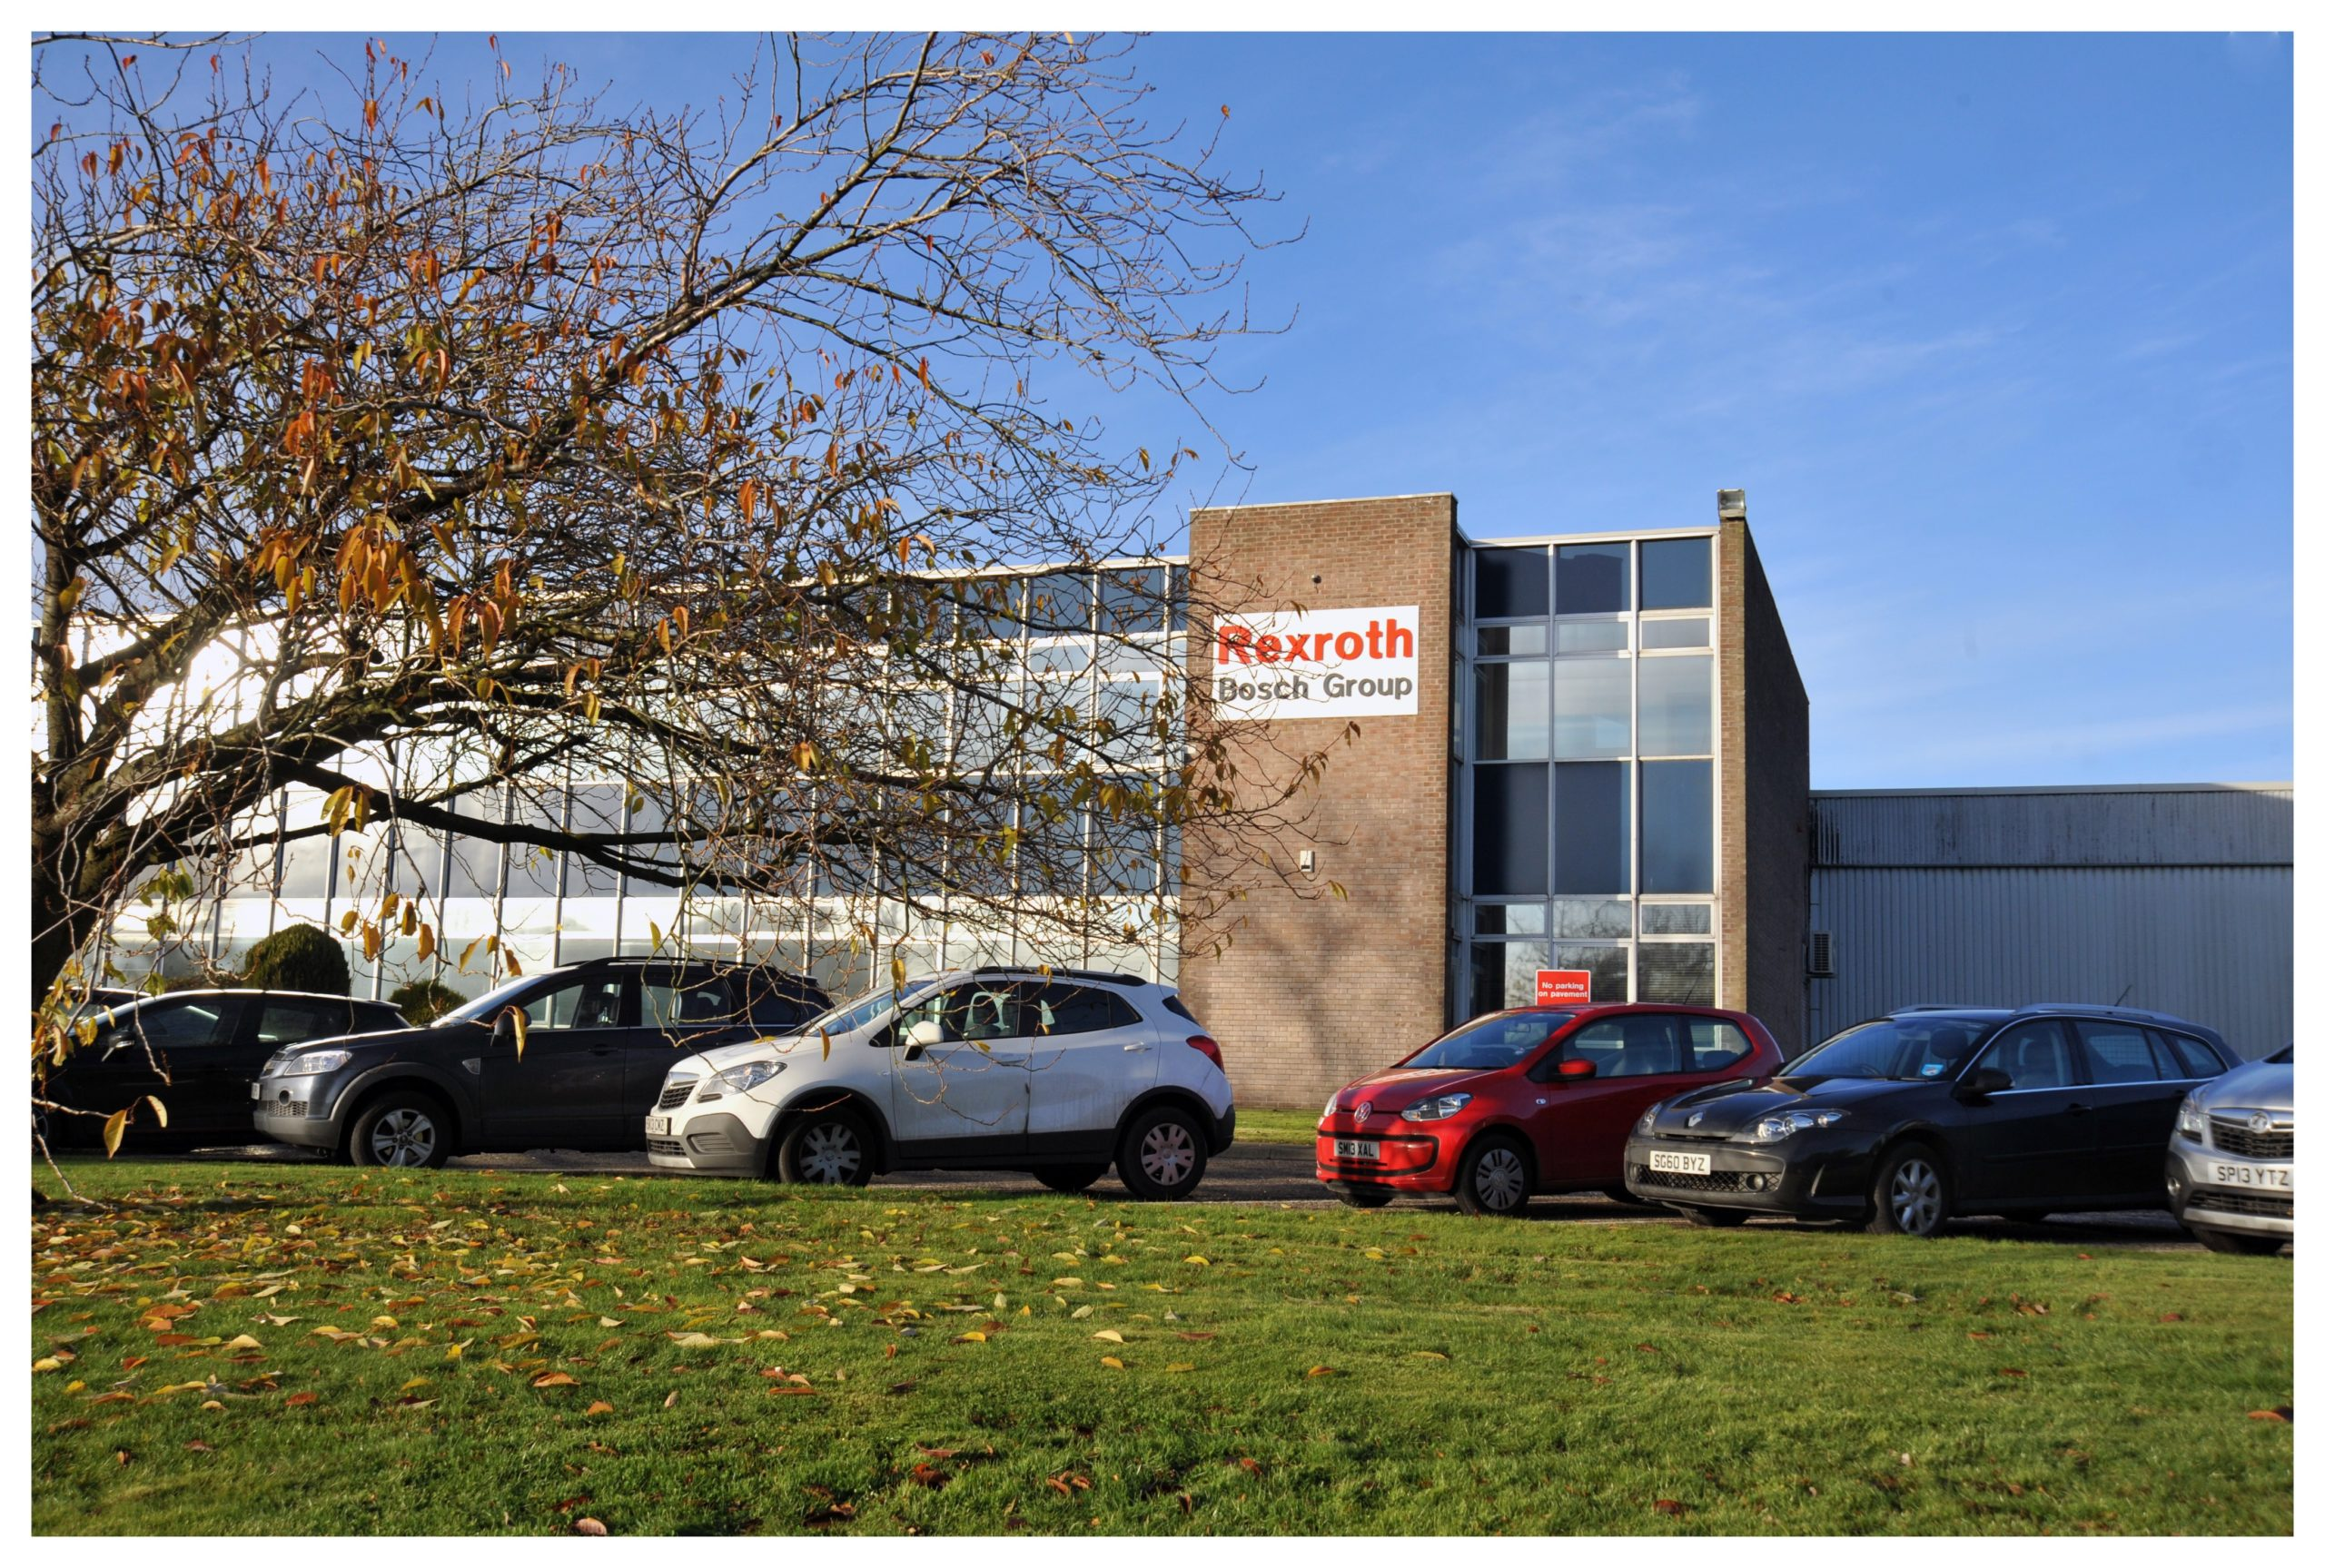 Rexroth Bosch's factory in Glenrothes was one of those firms visited by police during the lockdown.